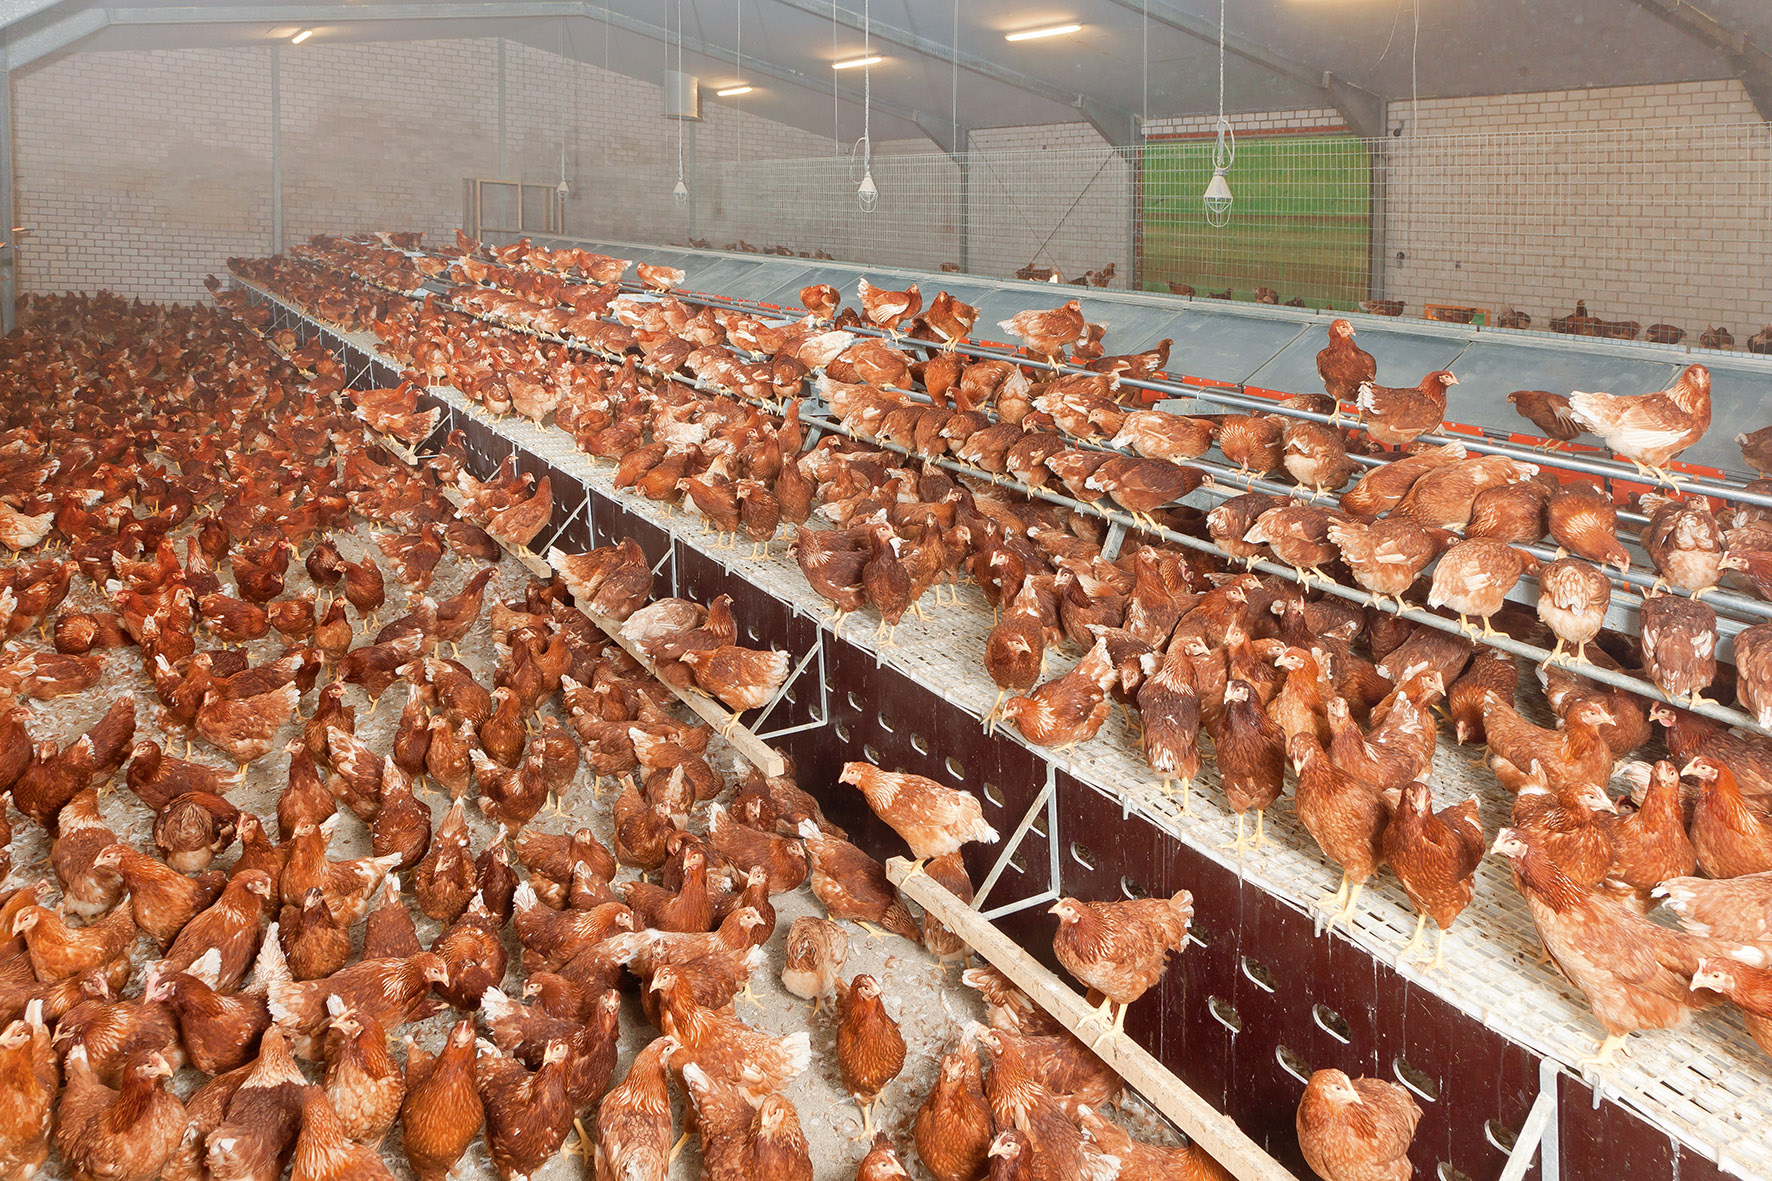 What Is Climate Control >> Aviary systems - poultry equipment and more in pictures ...